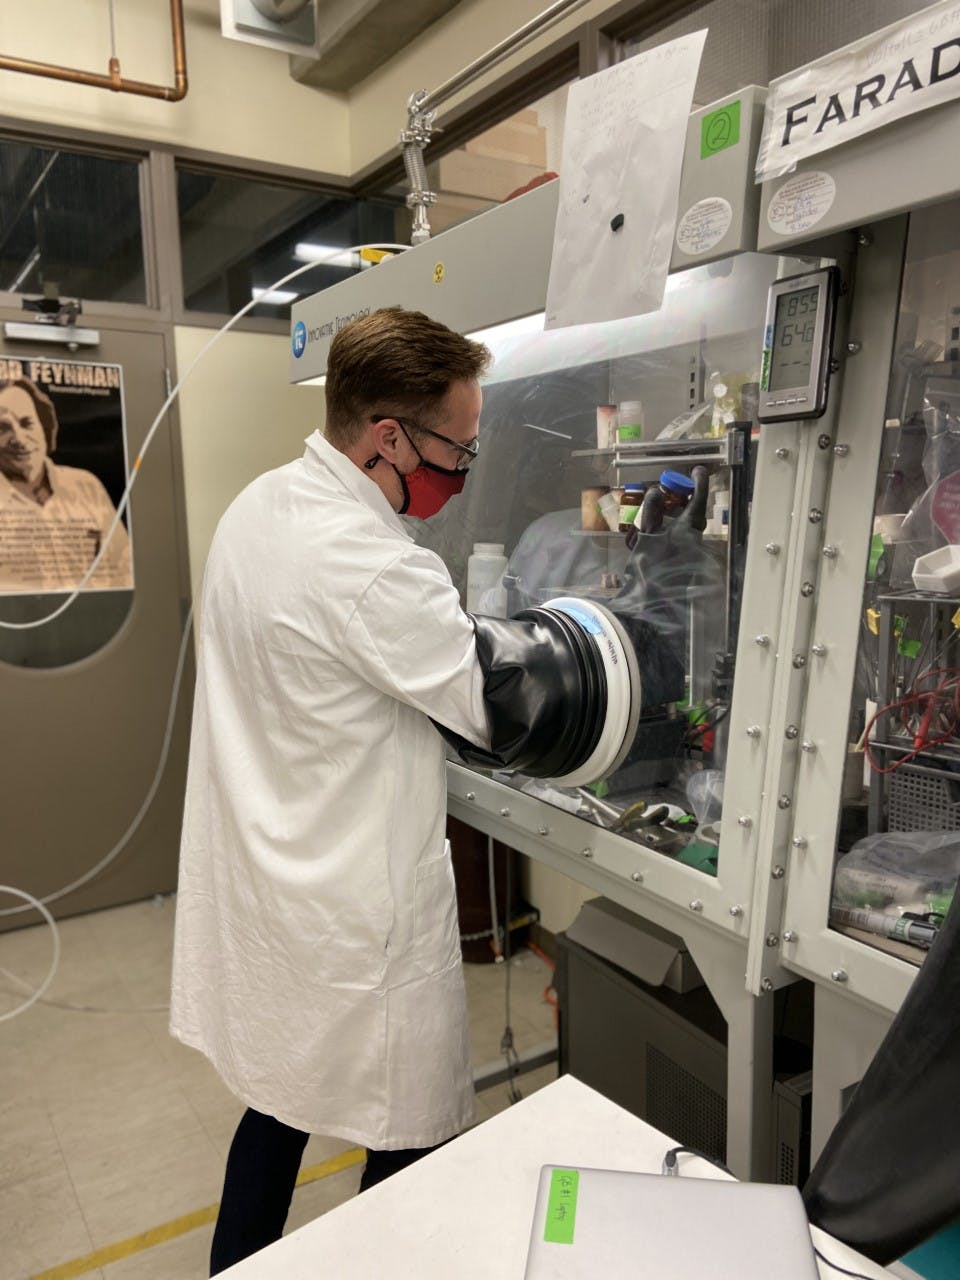 a caucasian man wears a lab coat and a mask and has his arms in protected gloves doing something in a machine.